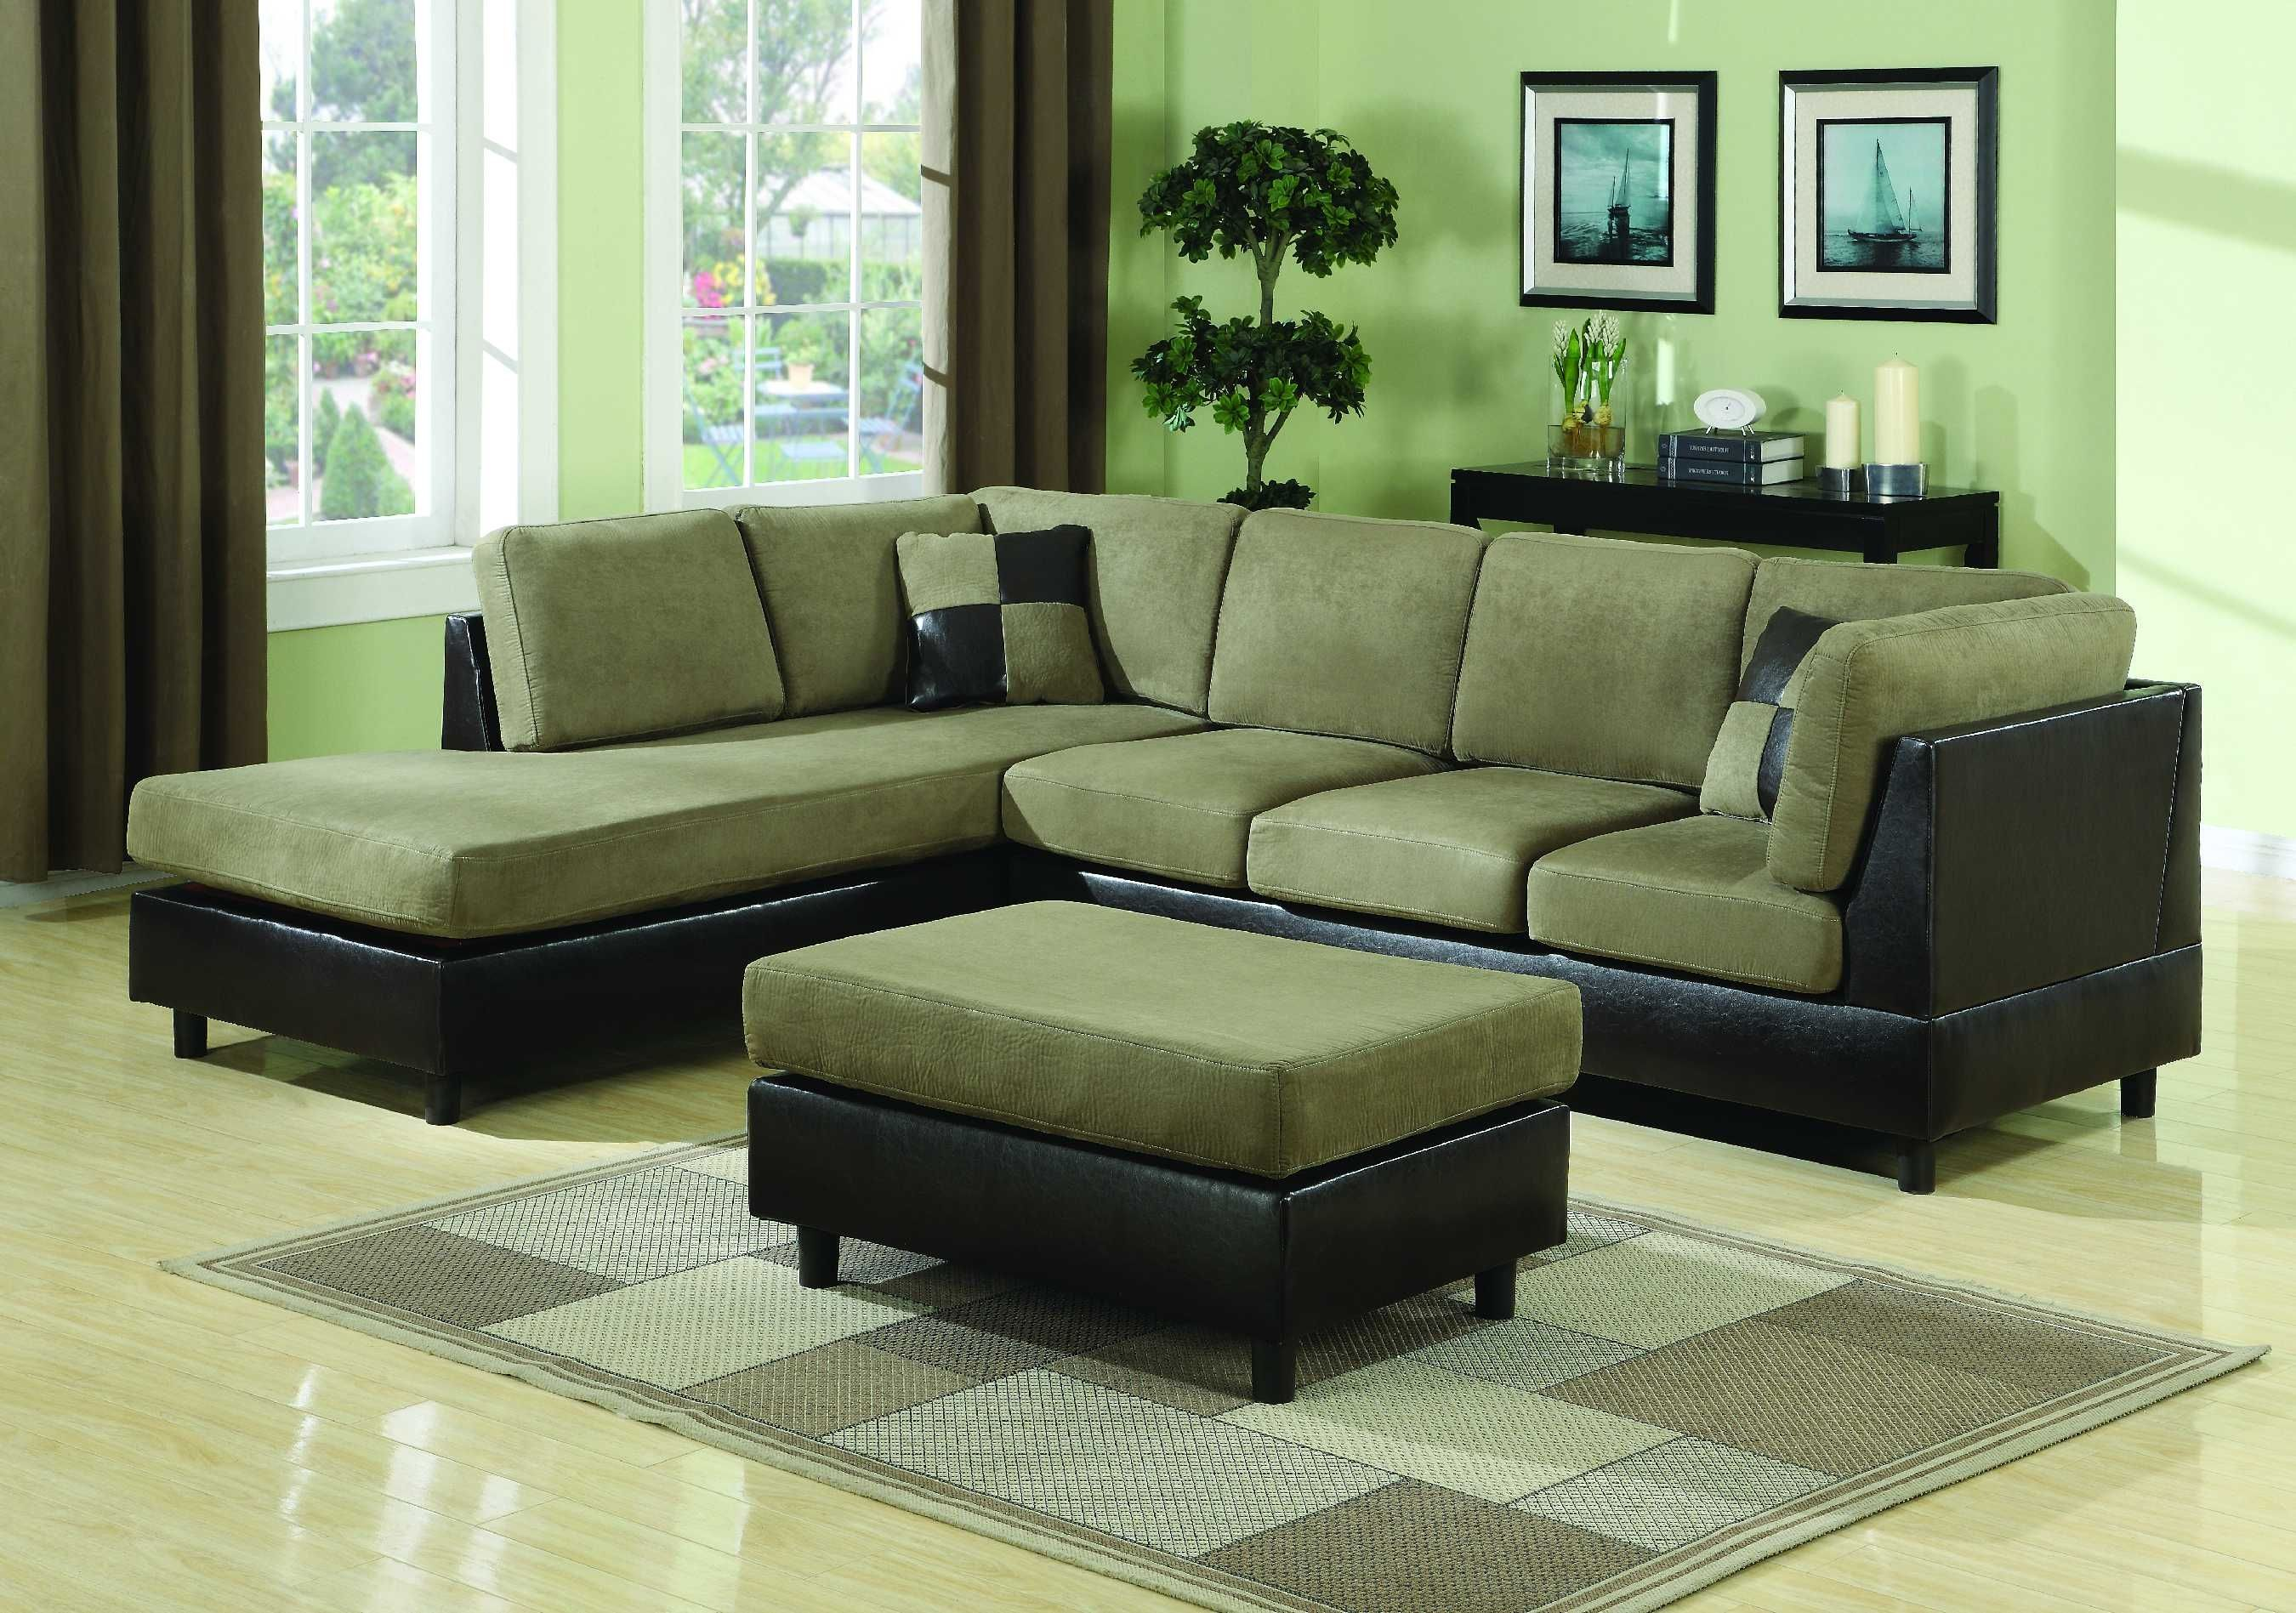 southwestern style sage green sofa decorating ideas zuo modern